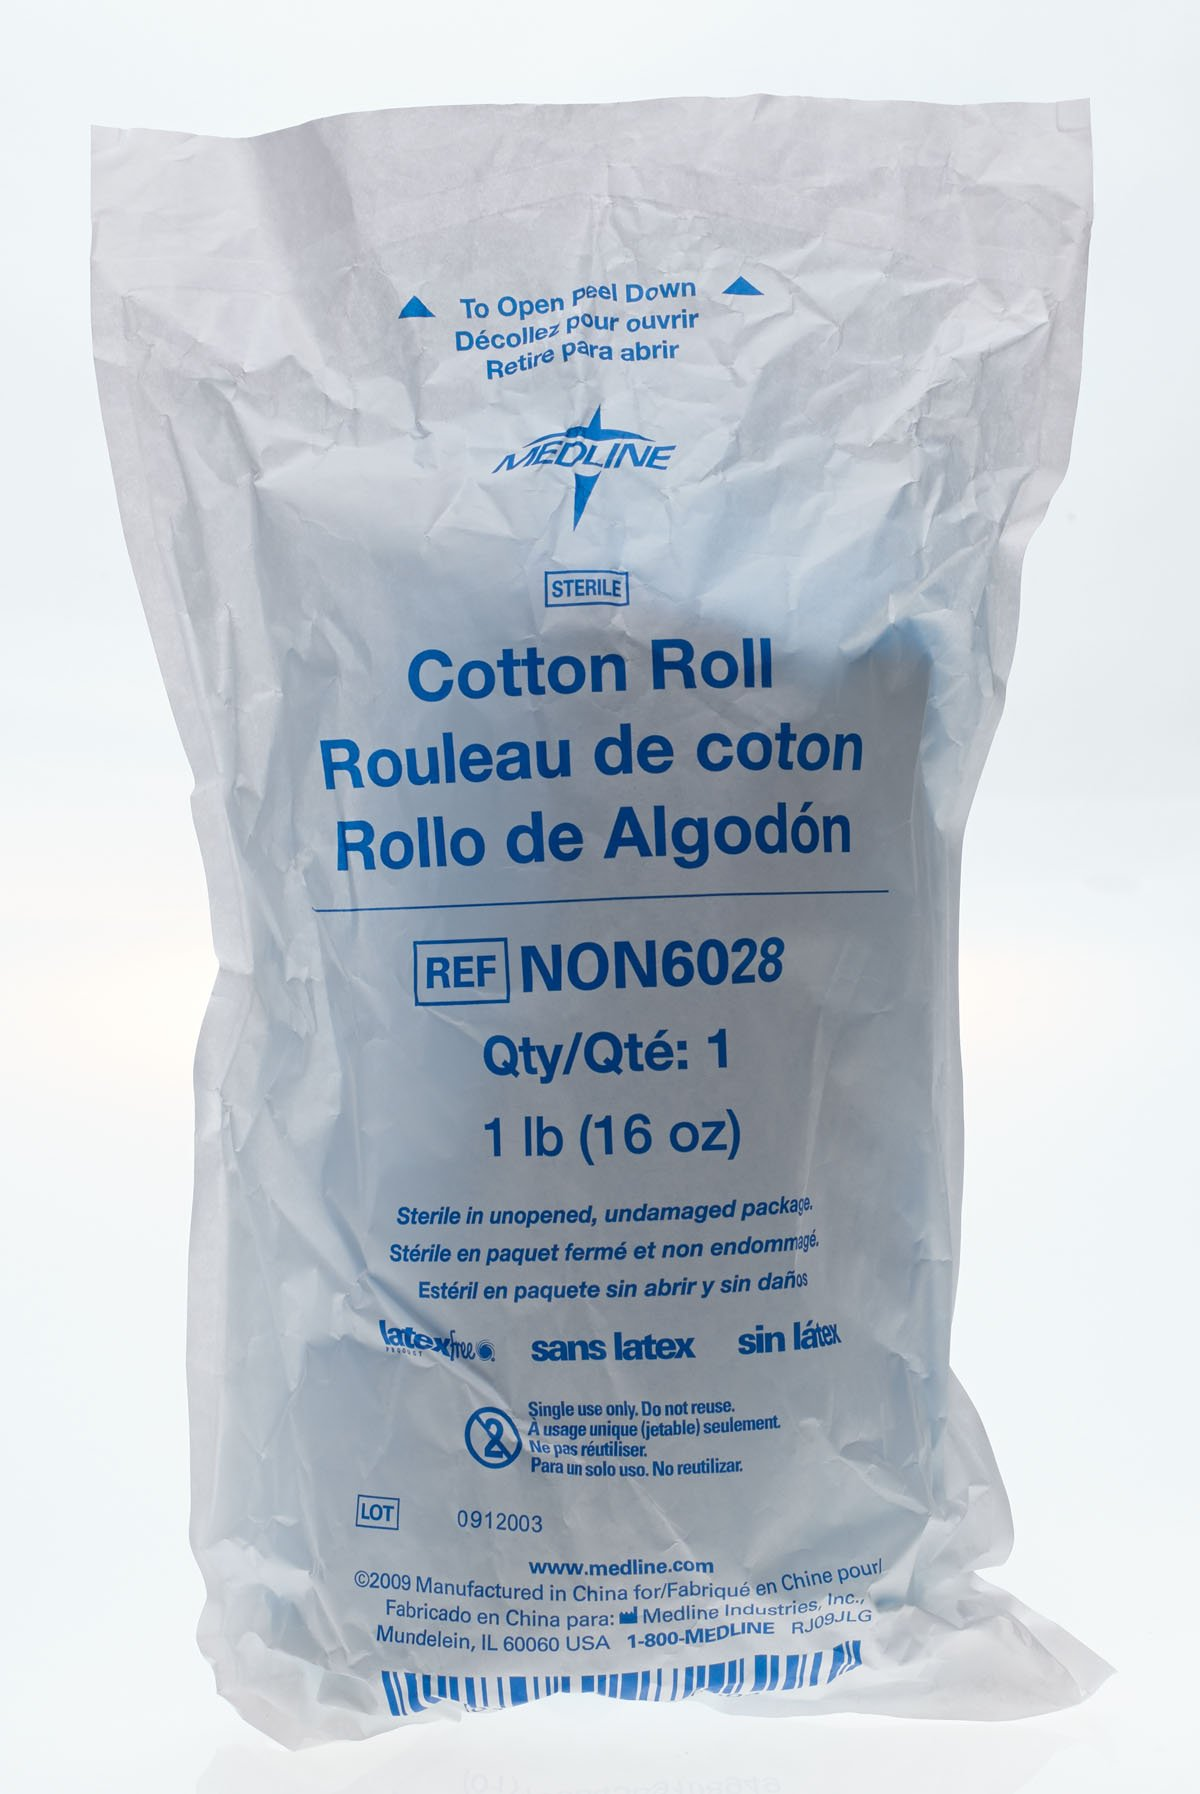 Medline NON6028 Cotton Roll, Sterile, 1 lb., 1' x  8.5' (Pack of 10) by Medline